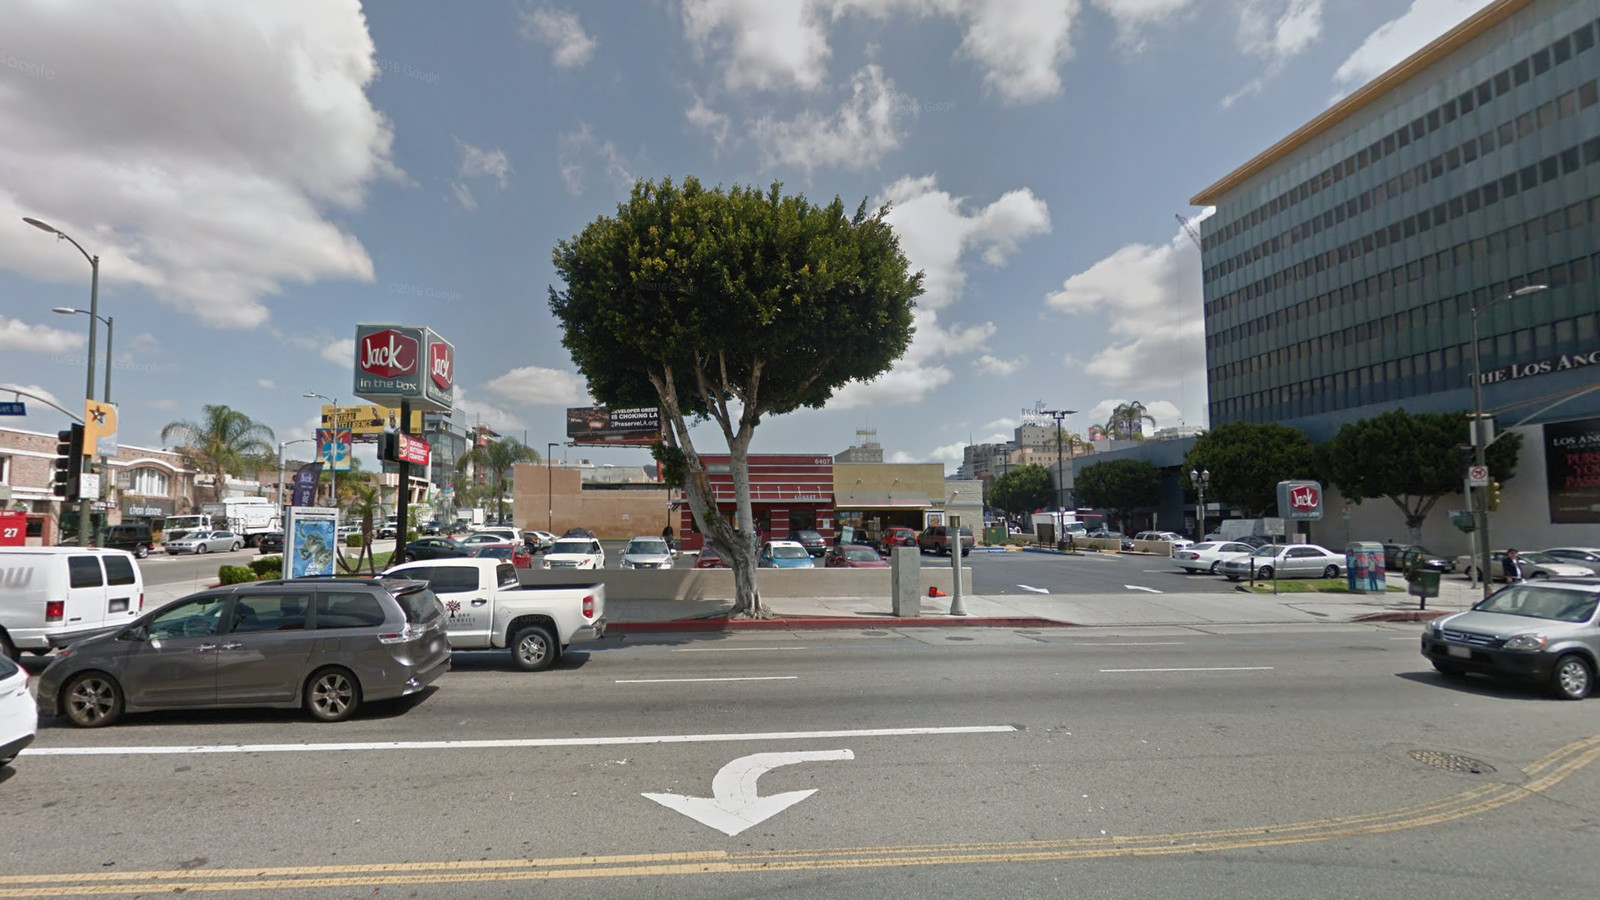 Police kill man in stabbing rampage on sunset boulevard in hollywood los angeles times - Attacker Stabs Three In Terrifying Hollywood Restaurant Rampage Eater La